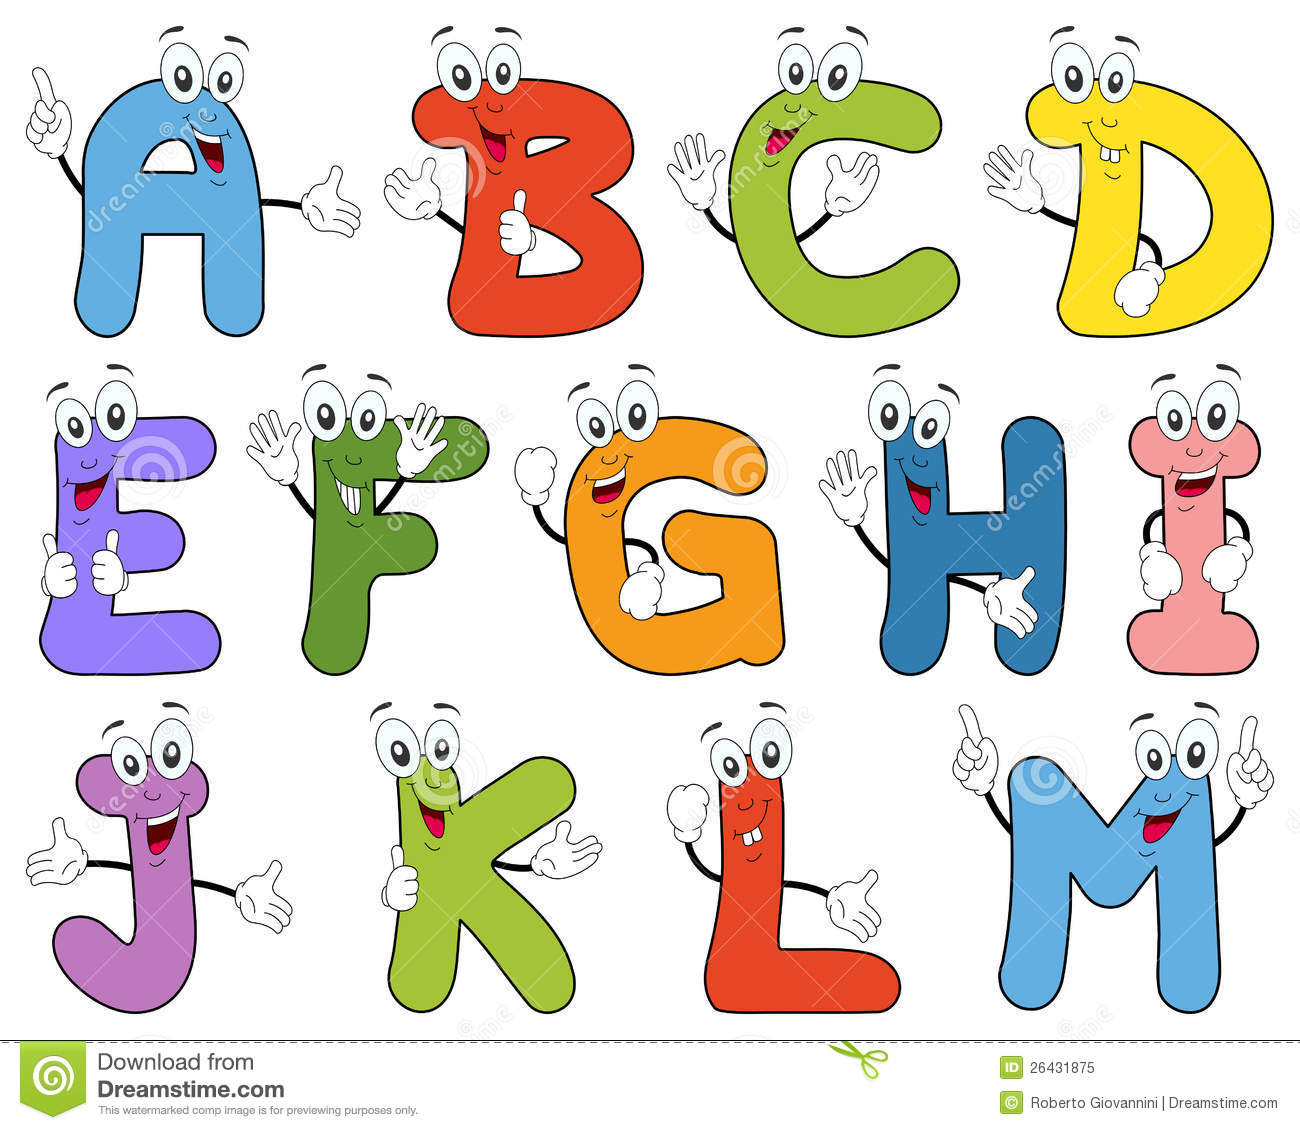 Animated Alphabe...M Alphabet Animation